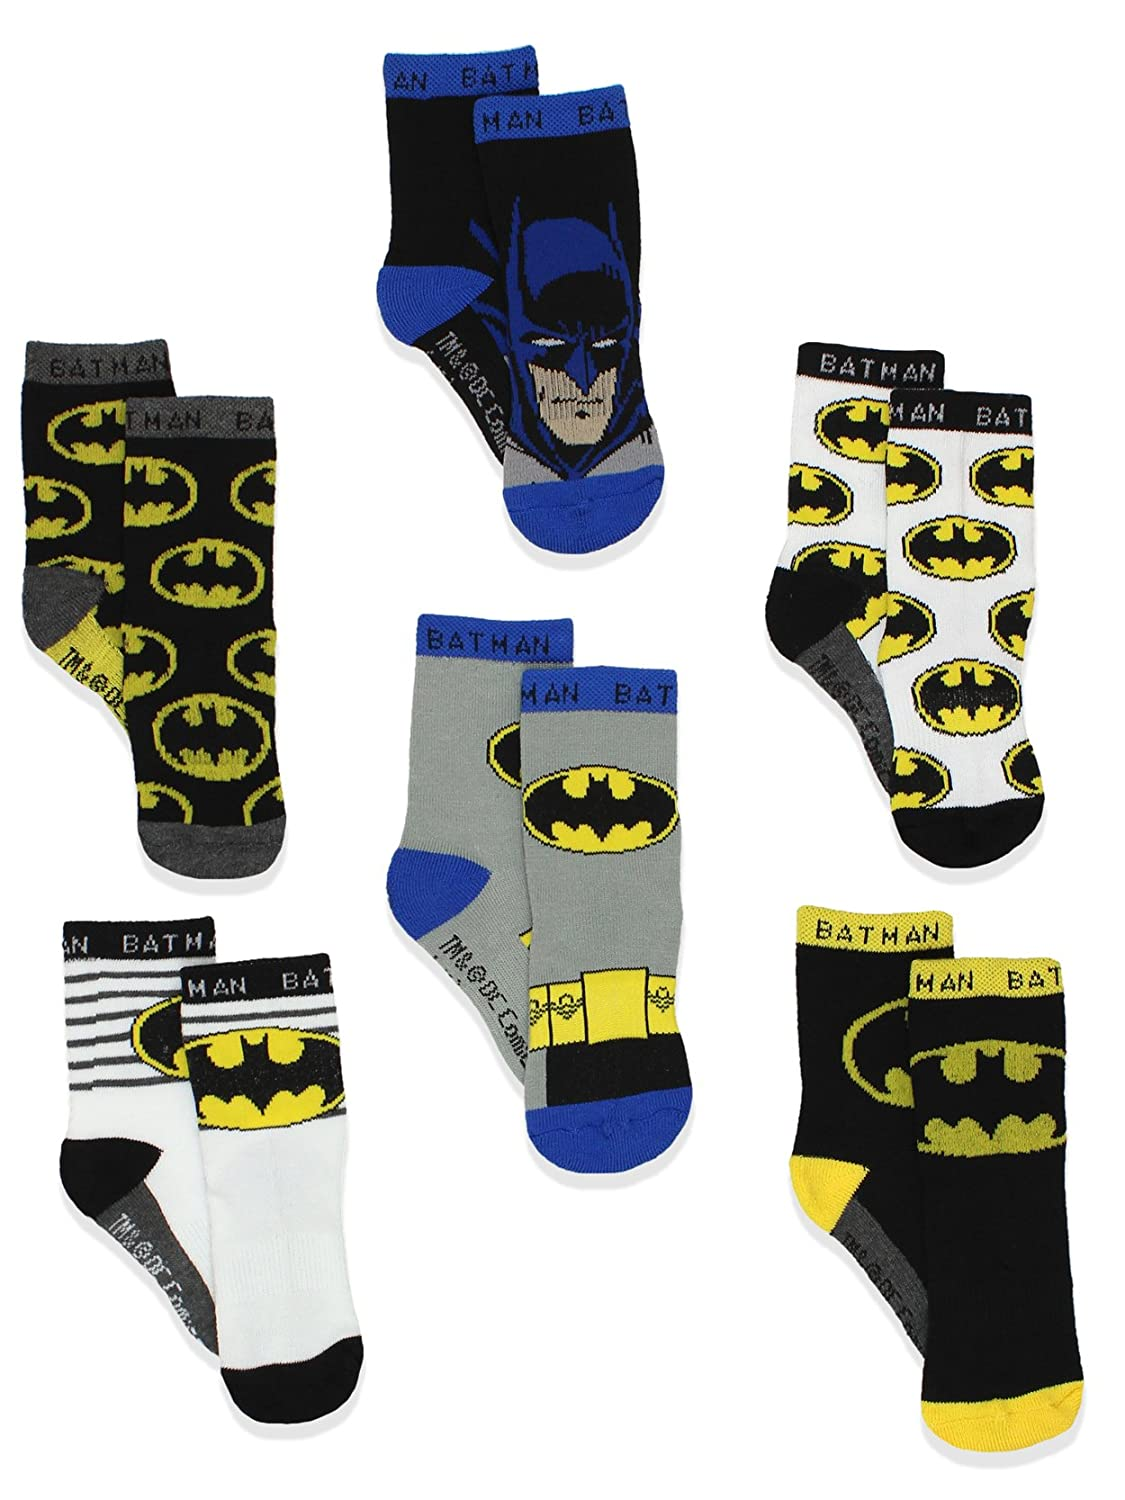 Batman Justice League Boy's 6 pack Athletic Crew Socks (Baby/Toddler) manufacturer